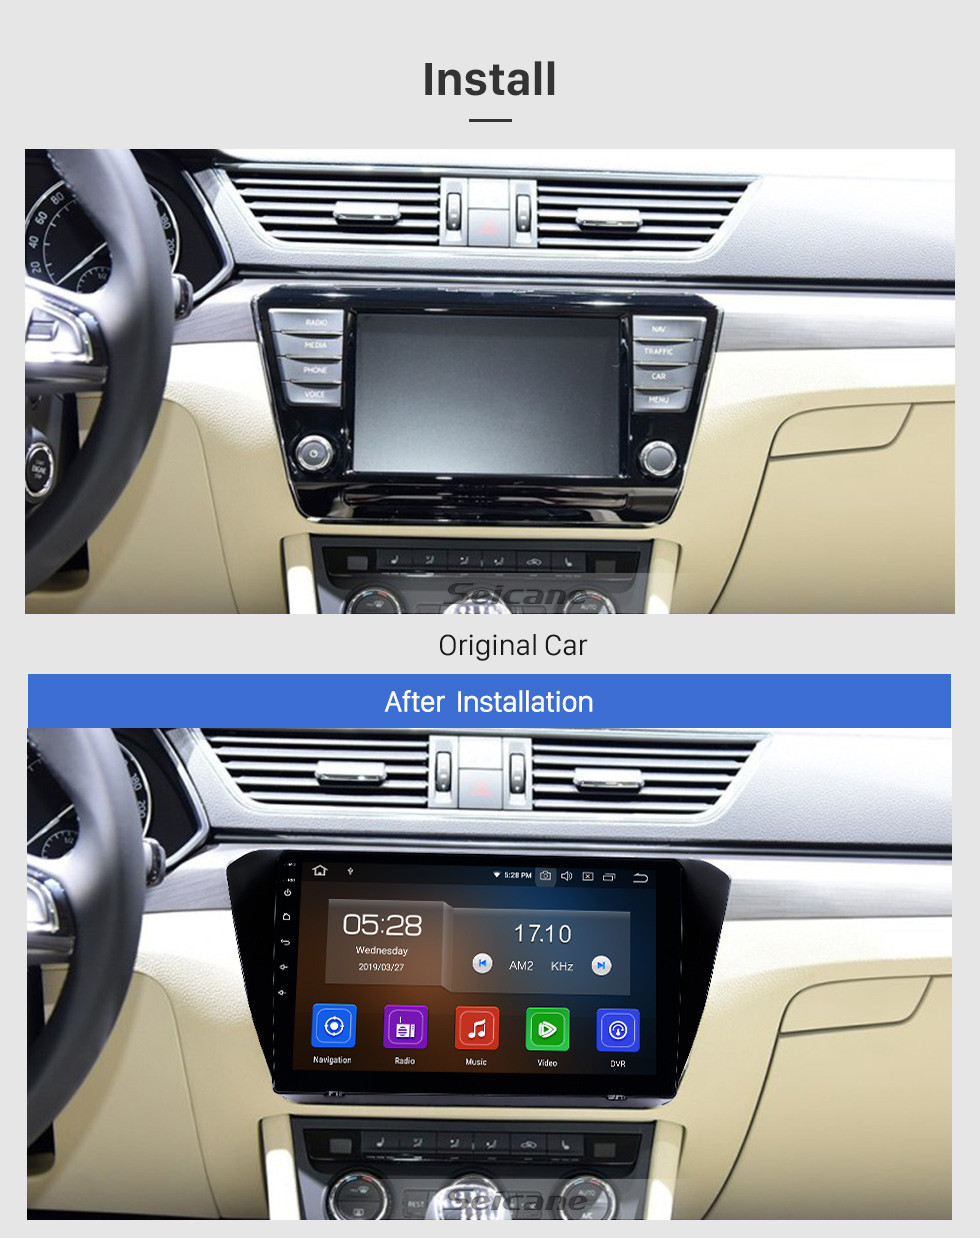 Seicane 10.1 inch Android 10.0 Radio for 2015-2018 Skoda Superb Bluetooth HD Touchscreen GPS Navigation Carplay USB support OBD2 Backup camera